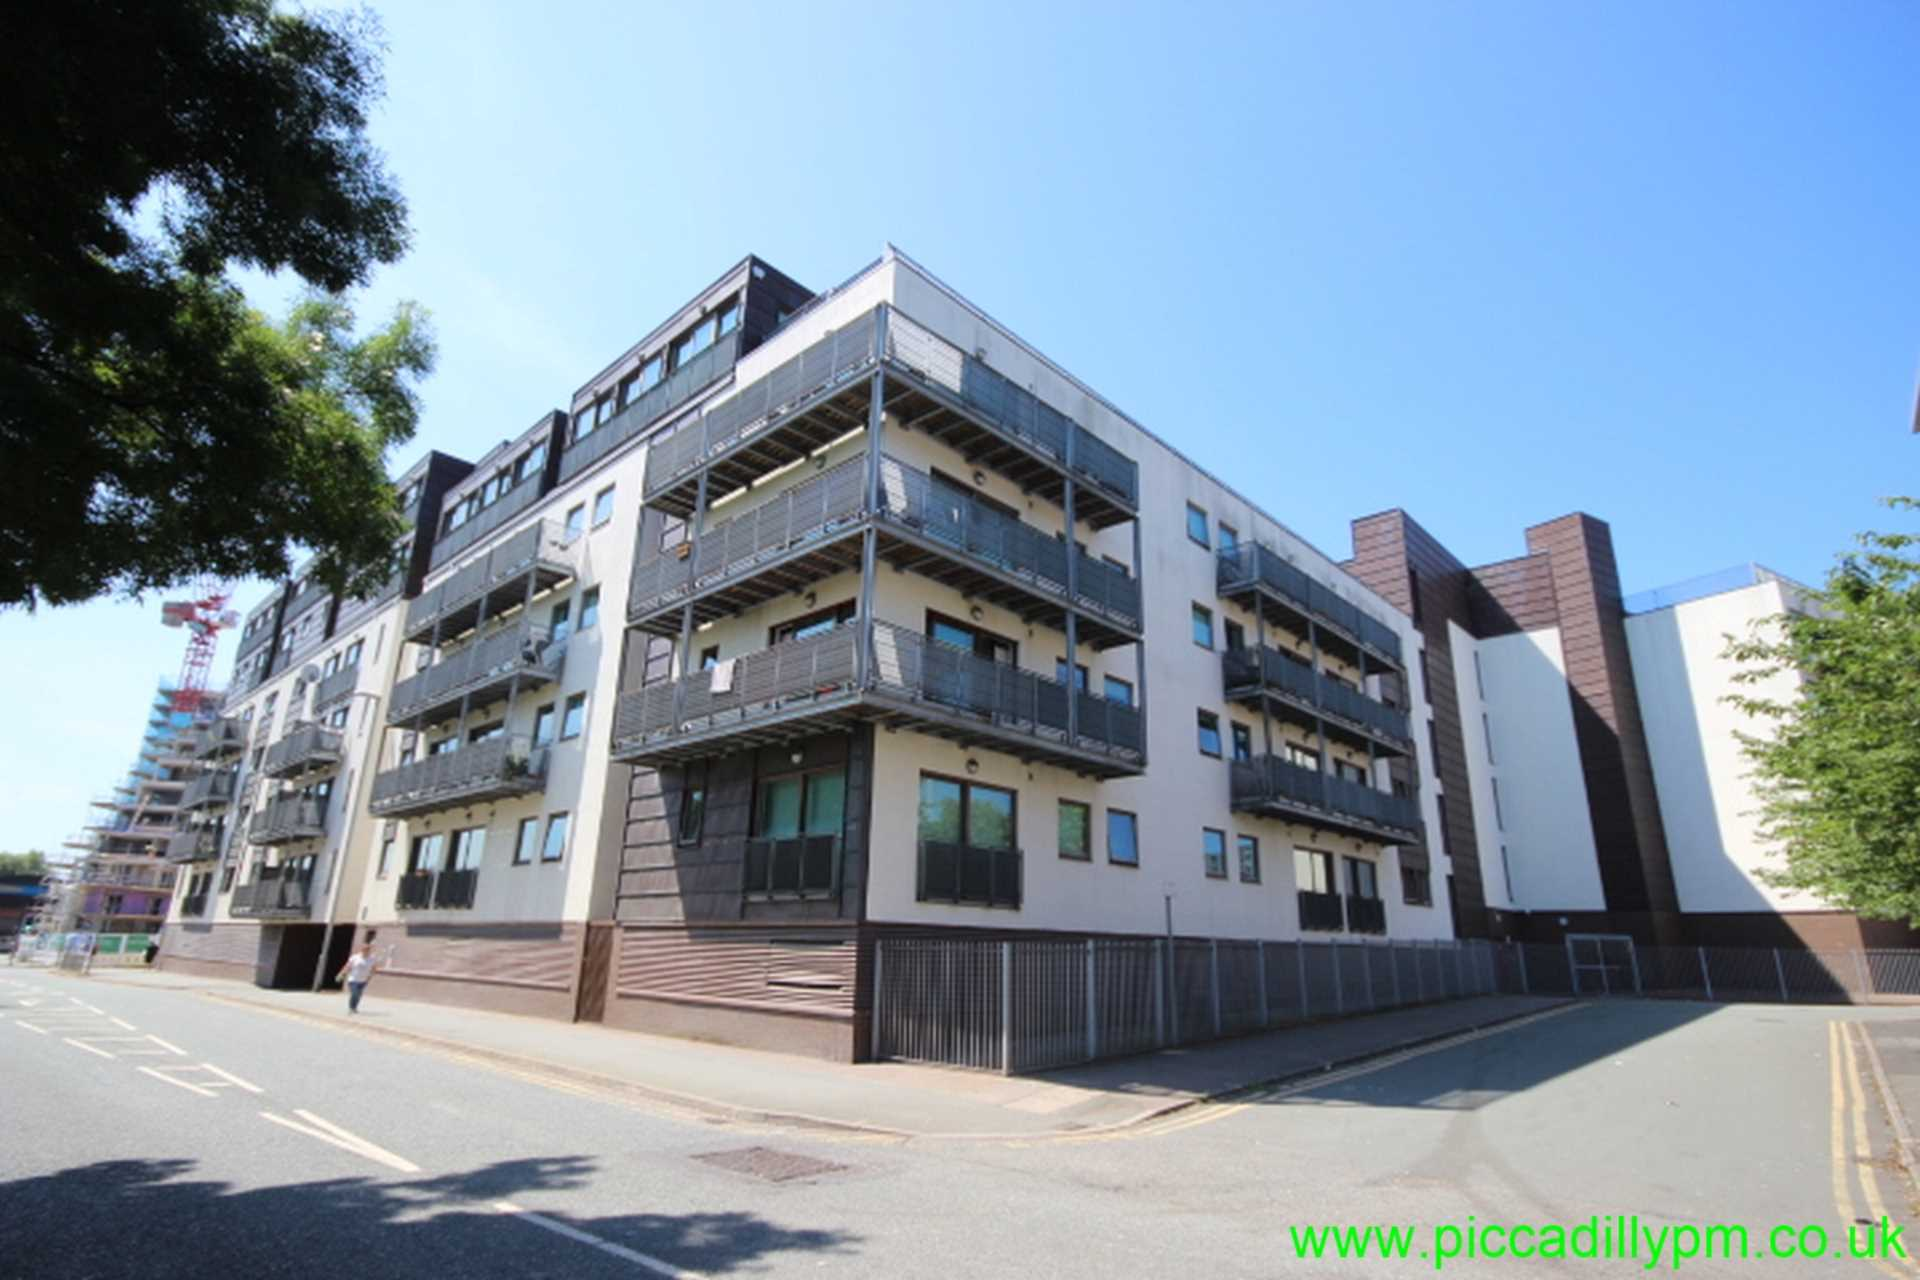 Piccadilly Property Management Ltd - 2 Bedroom Apartment, Advent 2/3, 1 Isaac Way, Ancoats, M4 7ED